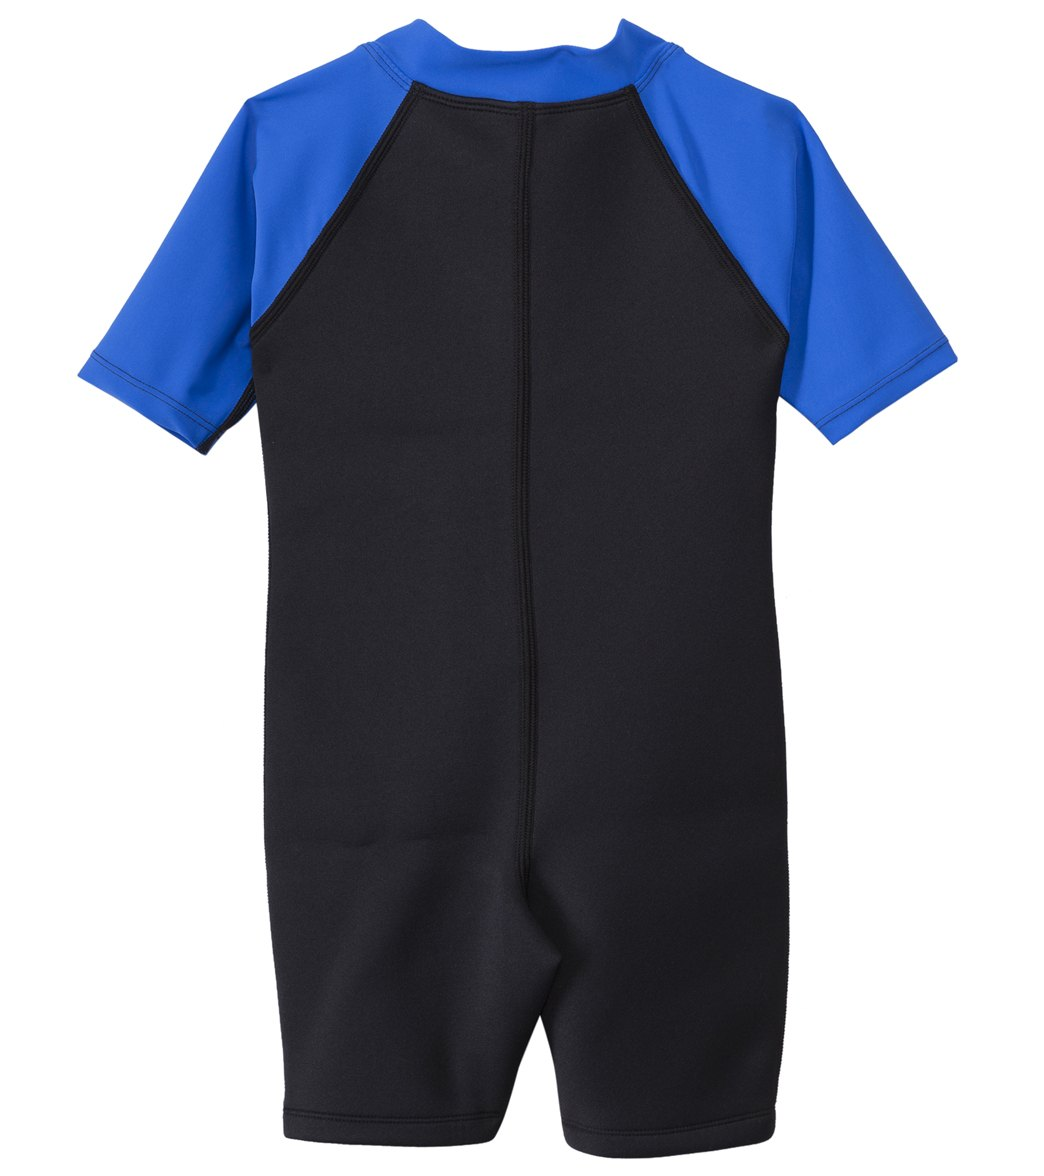 5cecd8e2bc Tuga Kids' Thermal Suit (1-14 years) at SwimOutlet.com